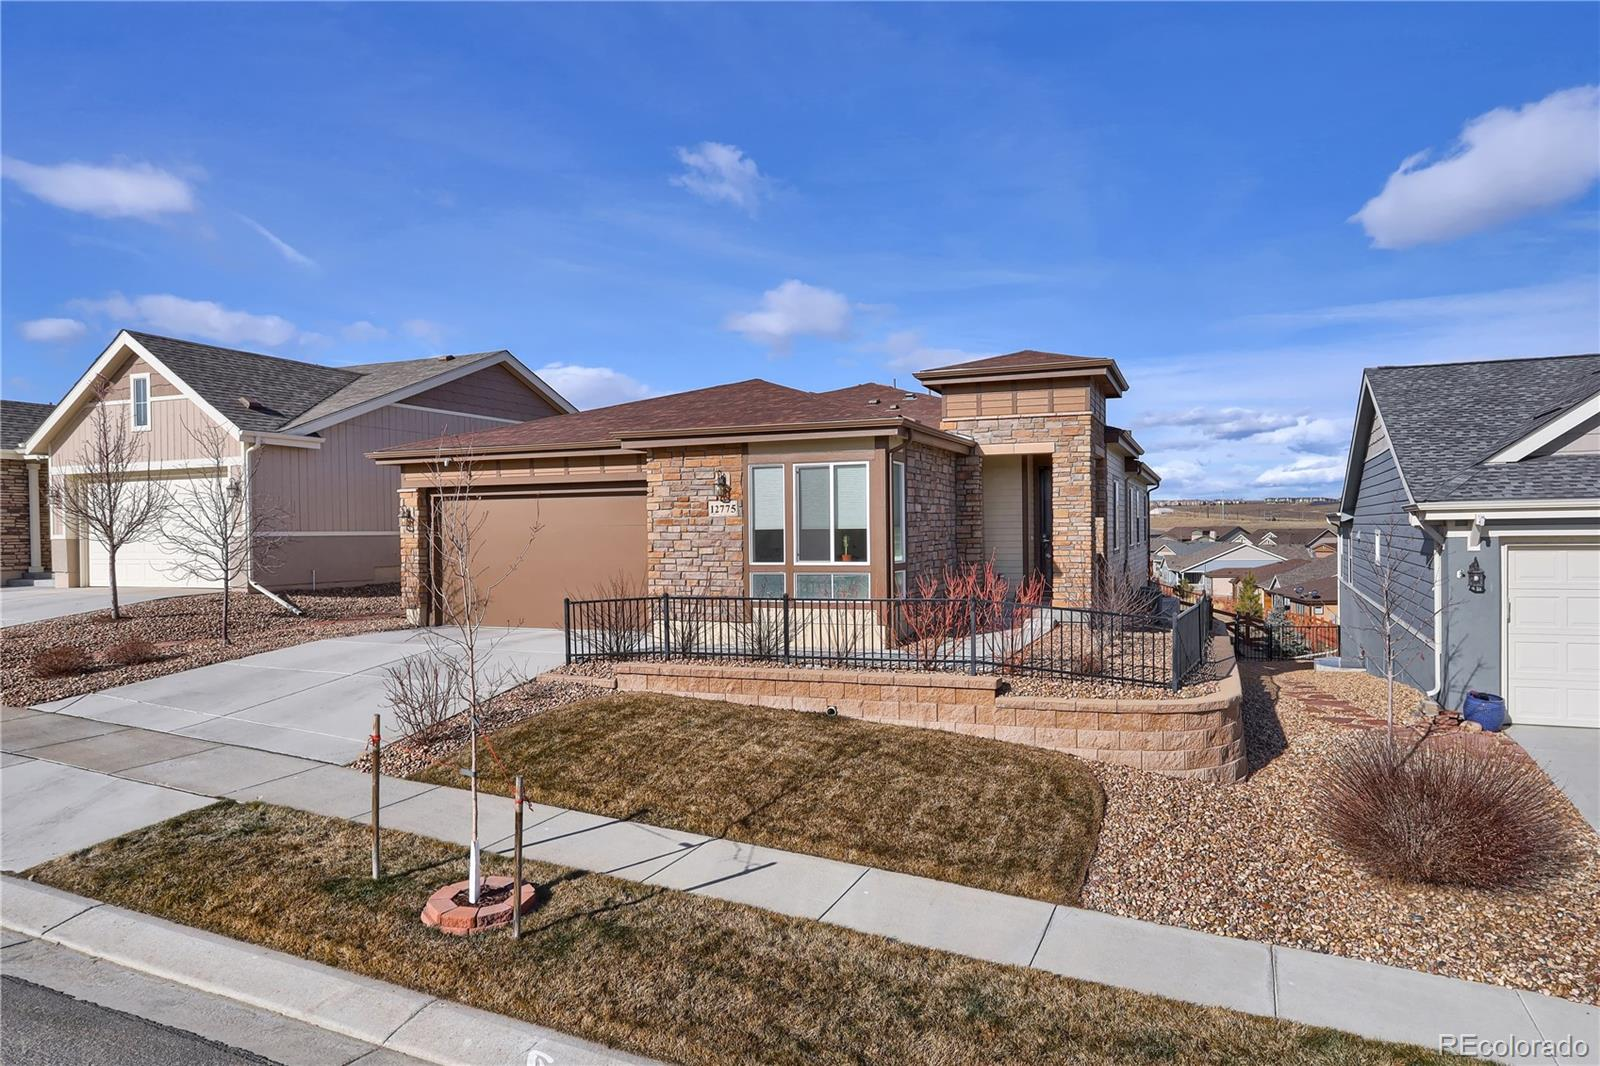 12775 Sandstone Drive, Broomfield, CO 80021 - Broomfield, CO real estate listing